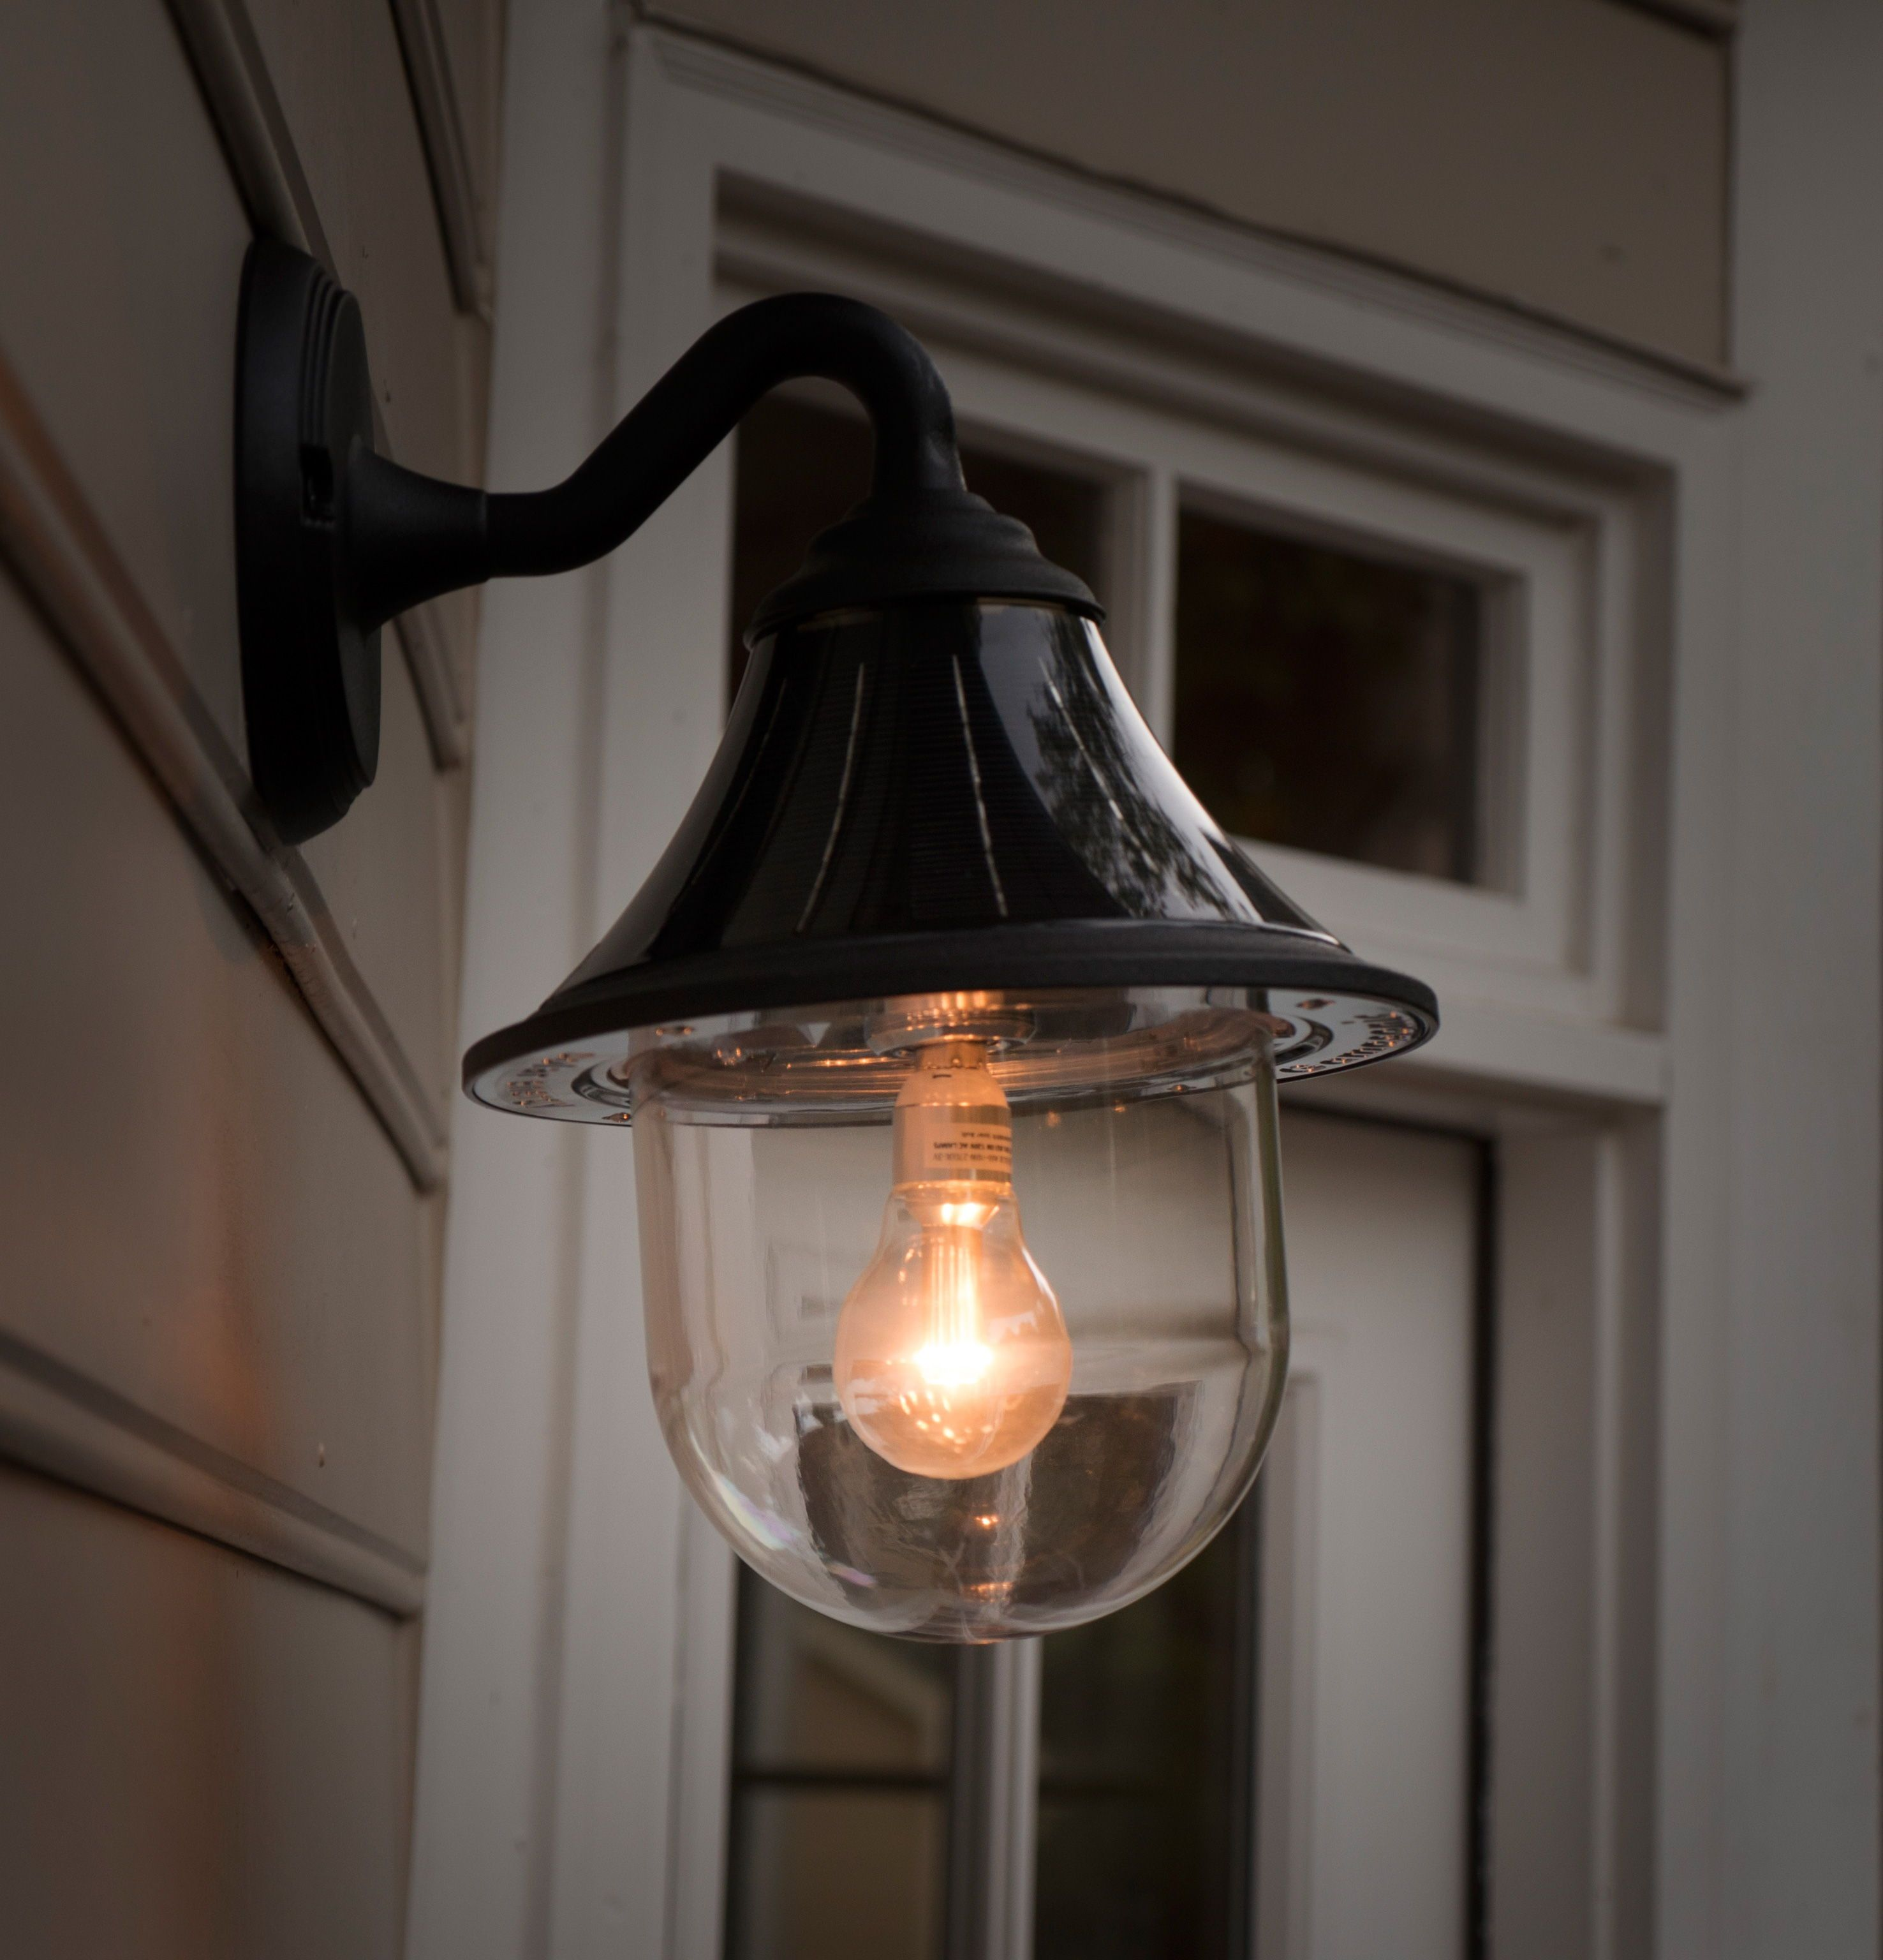 small resolution of perfect for home and garden diy specialists looking to upgrade their exterior outdoor lighting no electrical wiring required